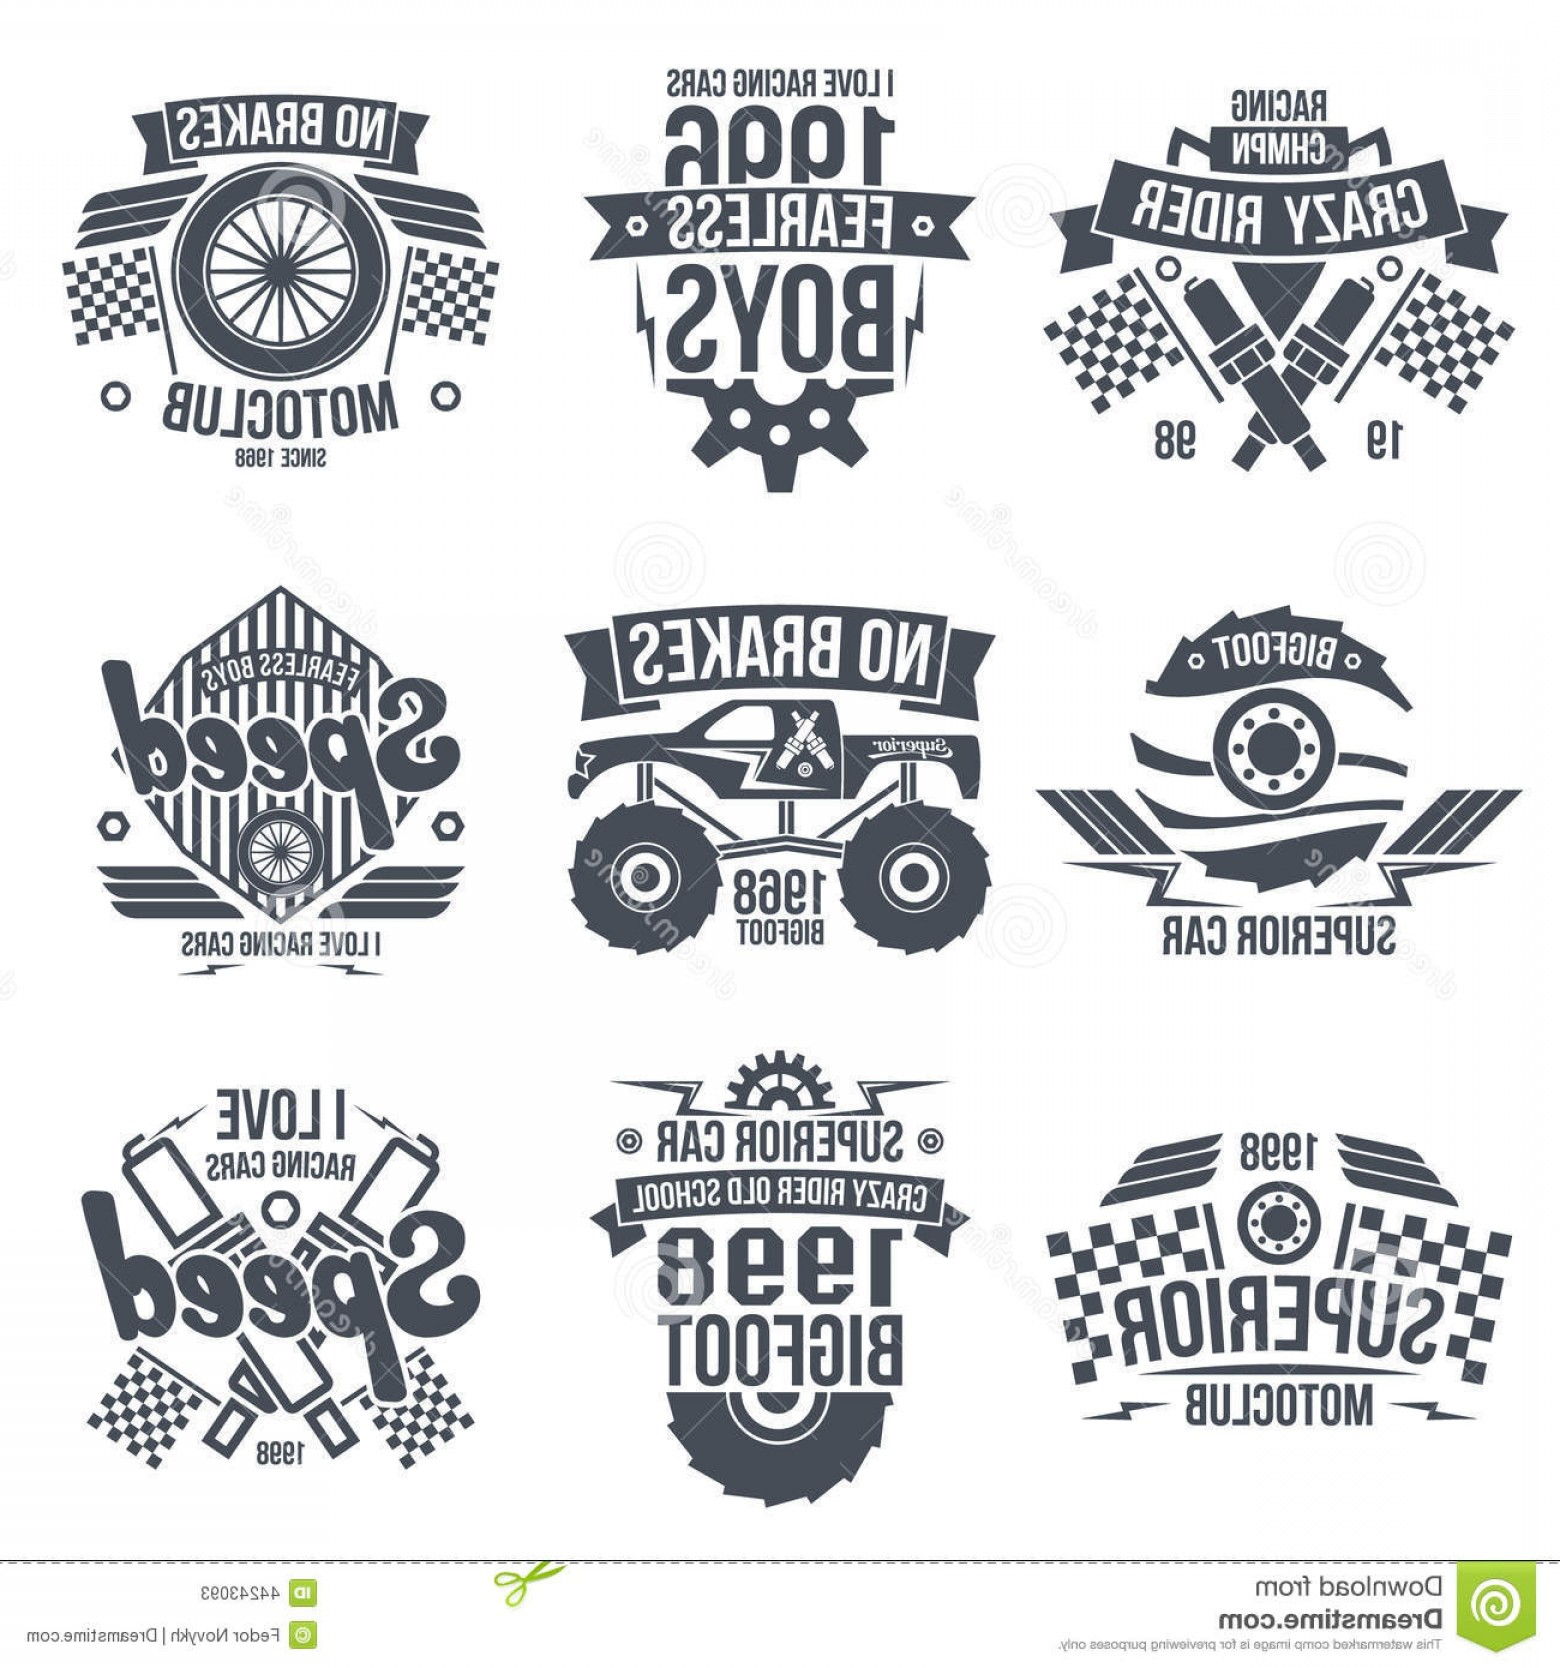 Black And White Vector Racing Graphics: Stock Illustration Emblems Retro Vintage Race Super Cars Graphic Design T Shirt Dark Print White Background Image